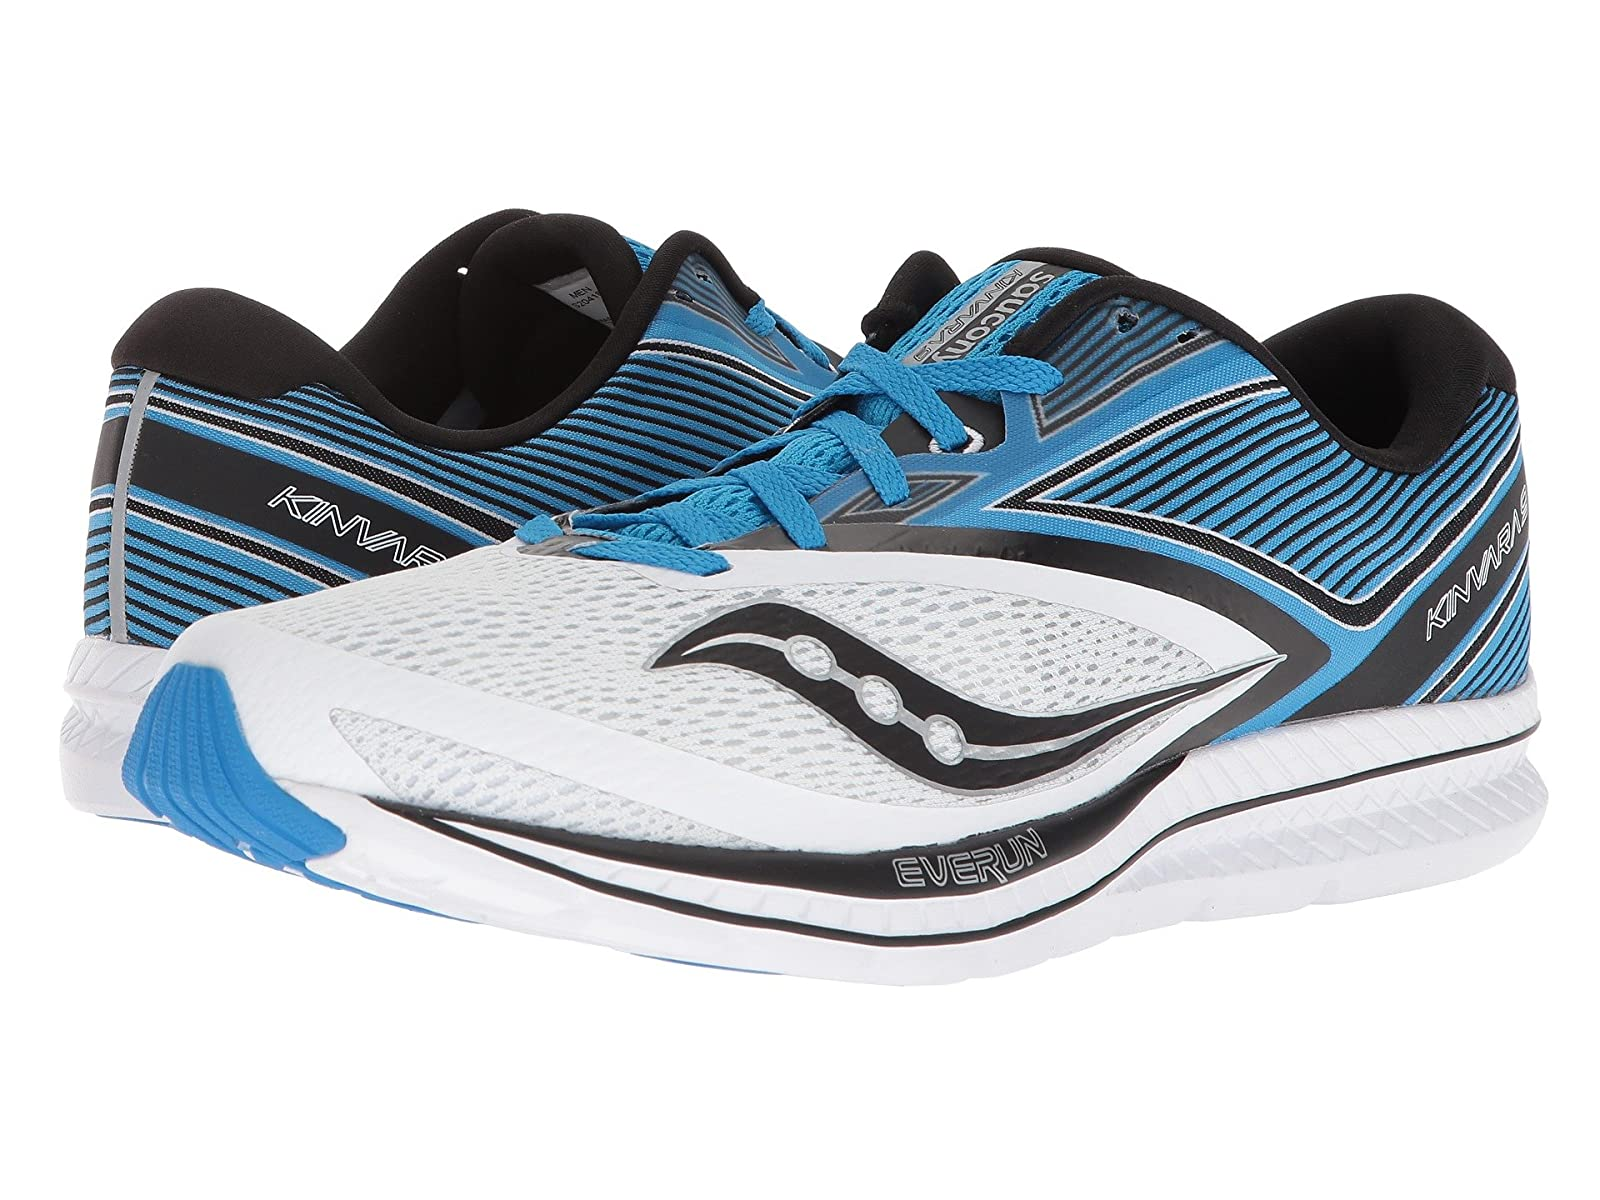 Saucony Kinvara 9Atmospheric grades have affordable shoes